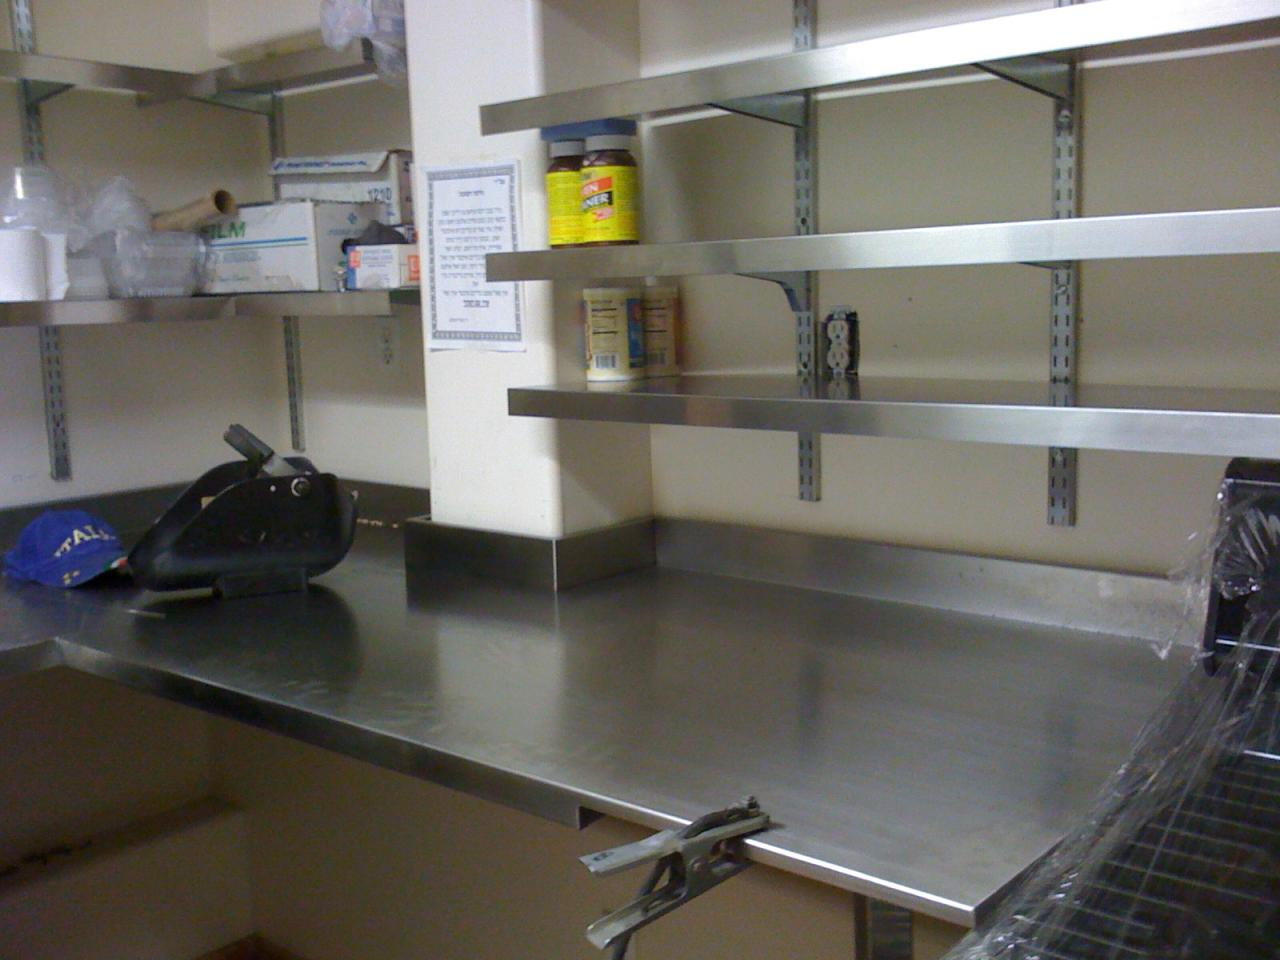 J Amp J Stainless Steel Supplies Inc Stainless Steel Kitchen